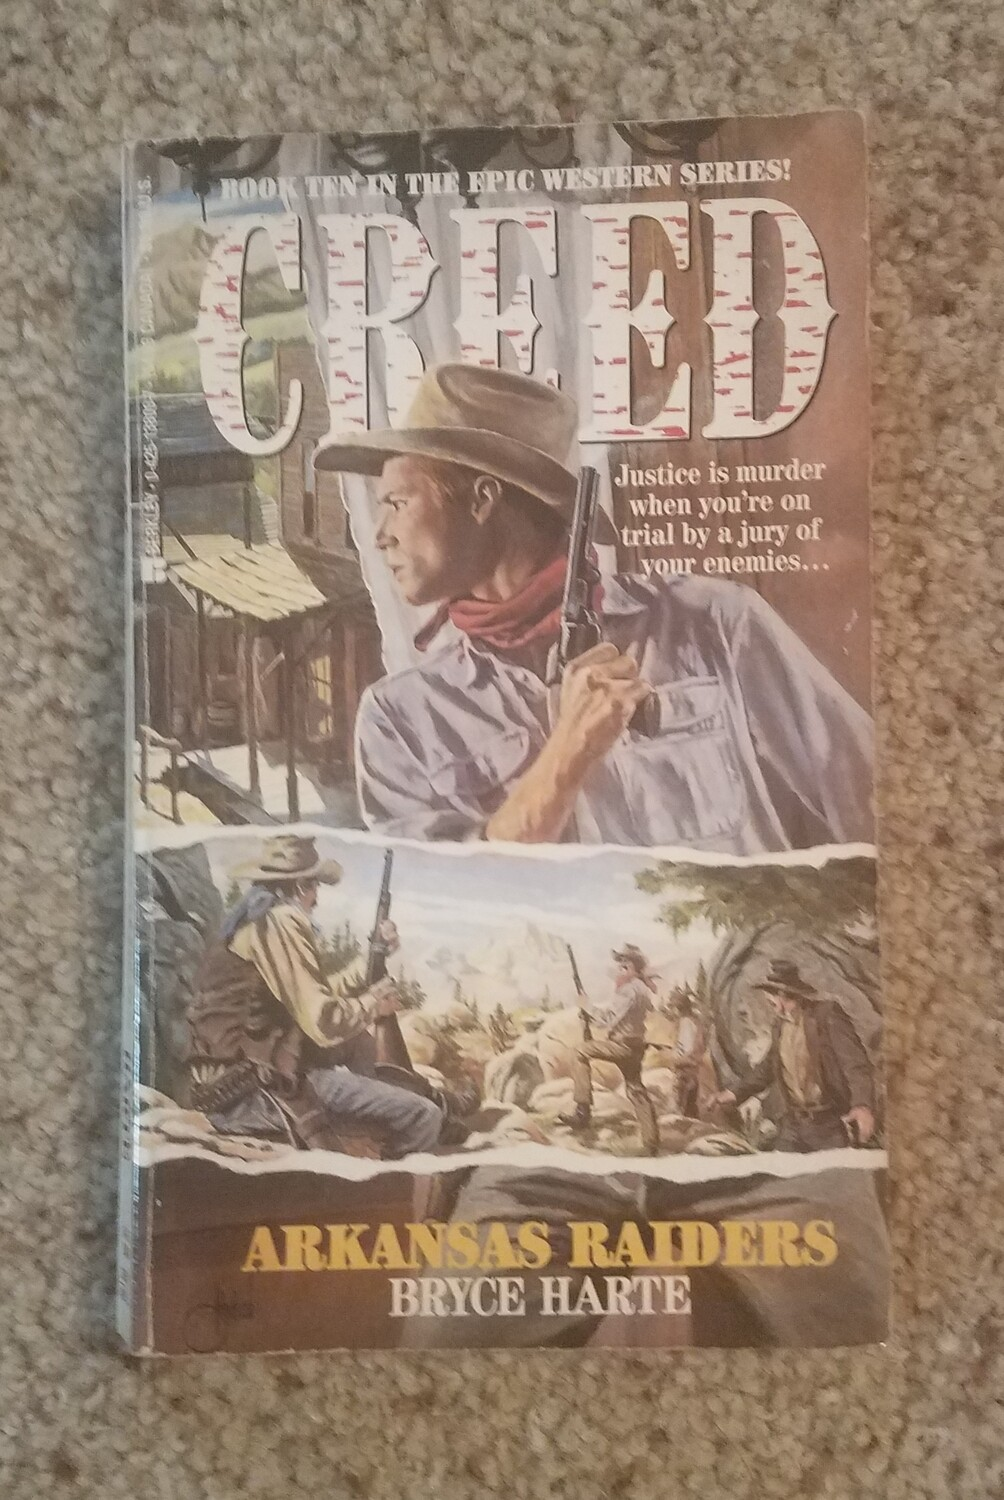 Creed: Arkansas Raiders by Bryce Harte